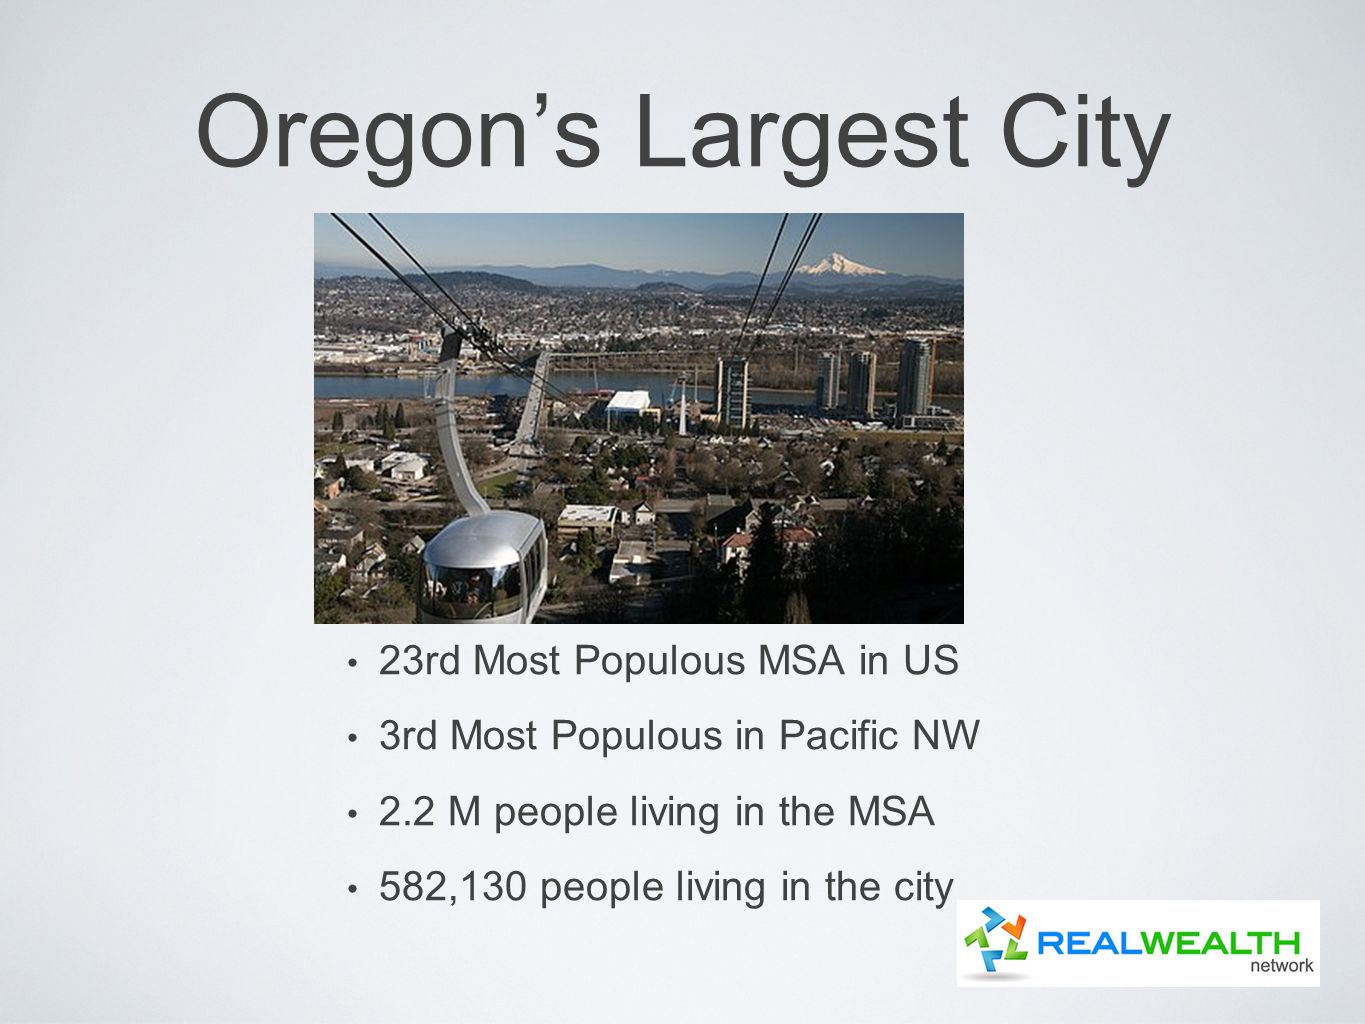 Oregon's Largest City 23rd Most Populous MSA in US 3rd Most Populous in Pacific NW 2.2 M people living in the MSA 582,130 people living in the city